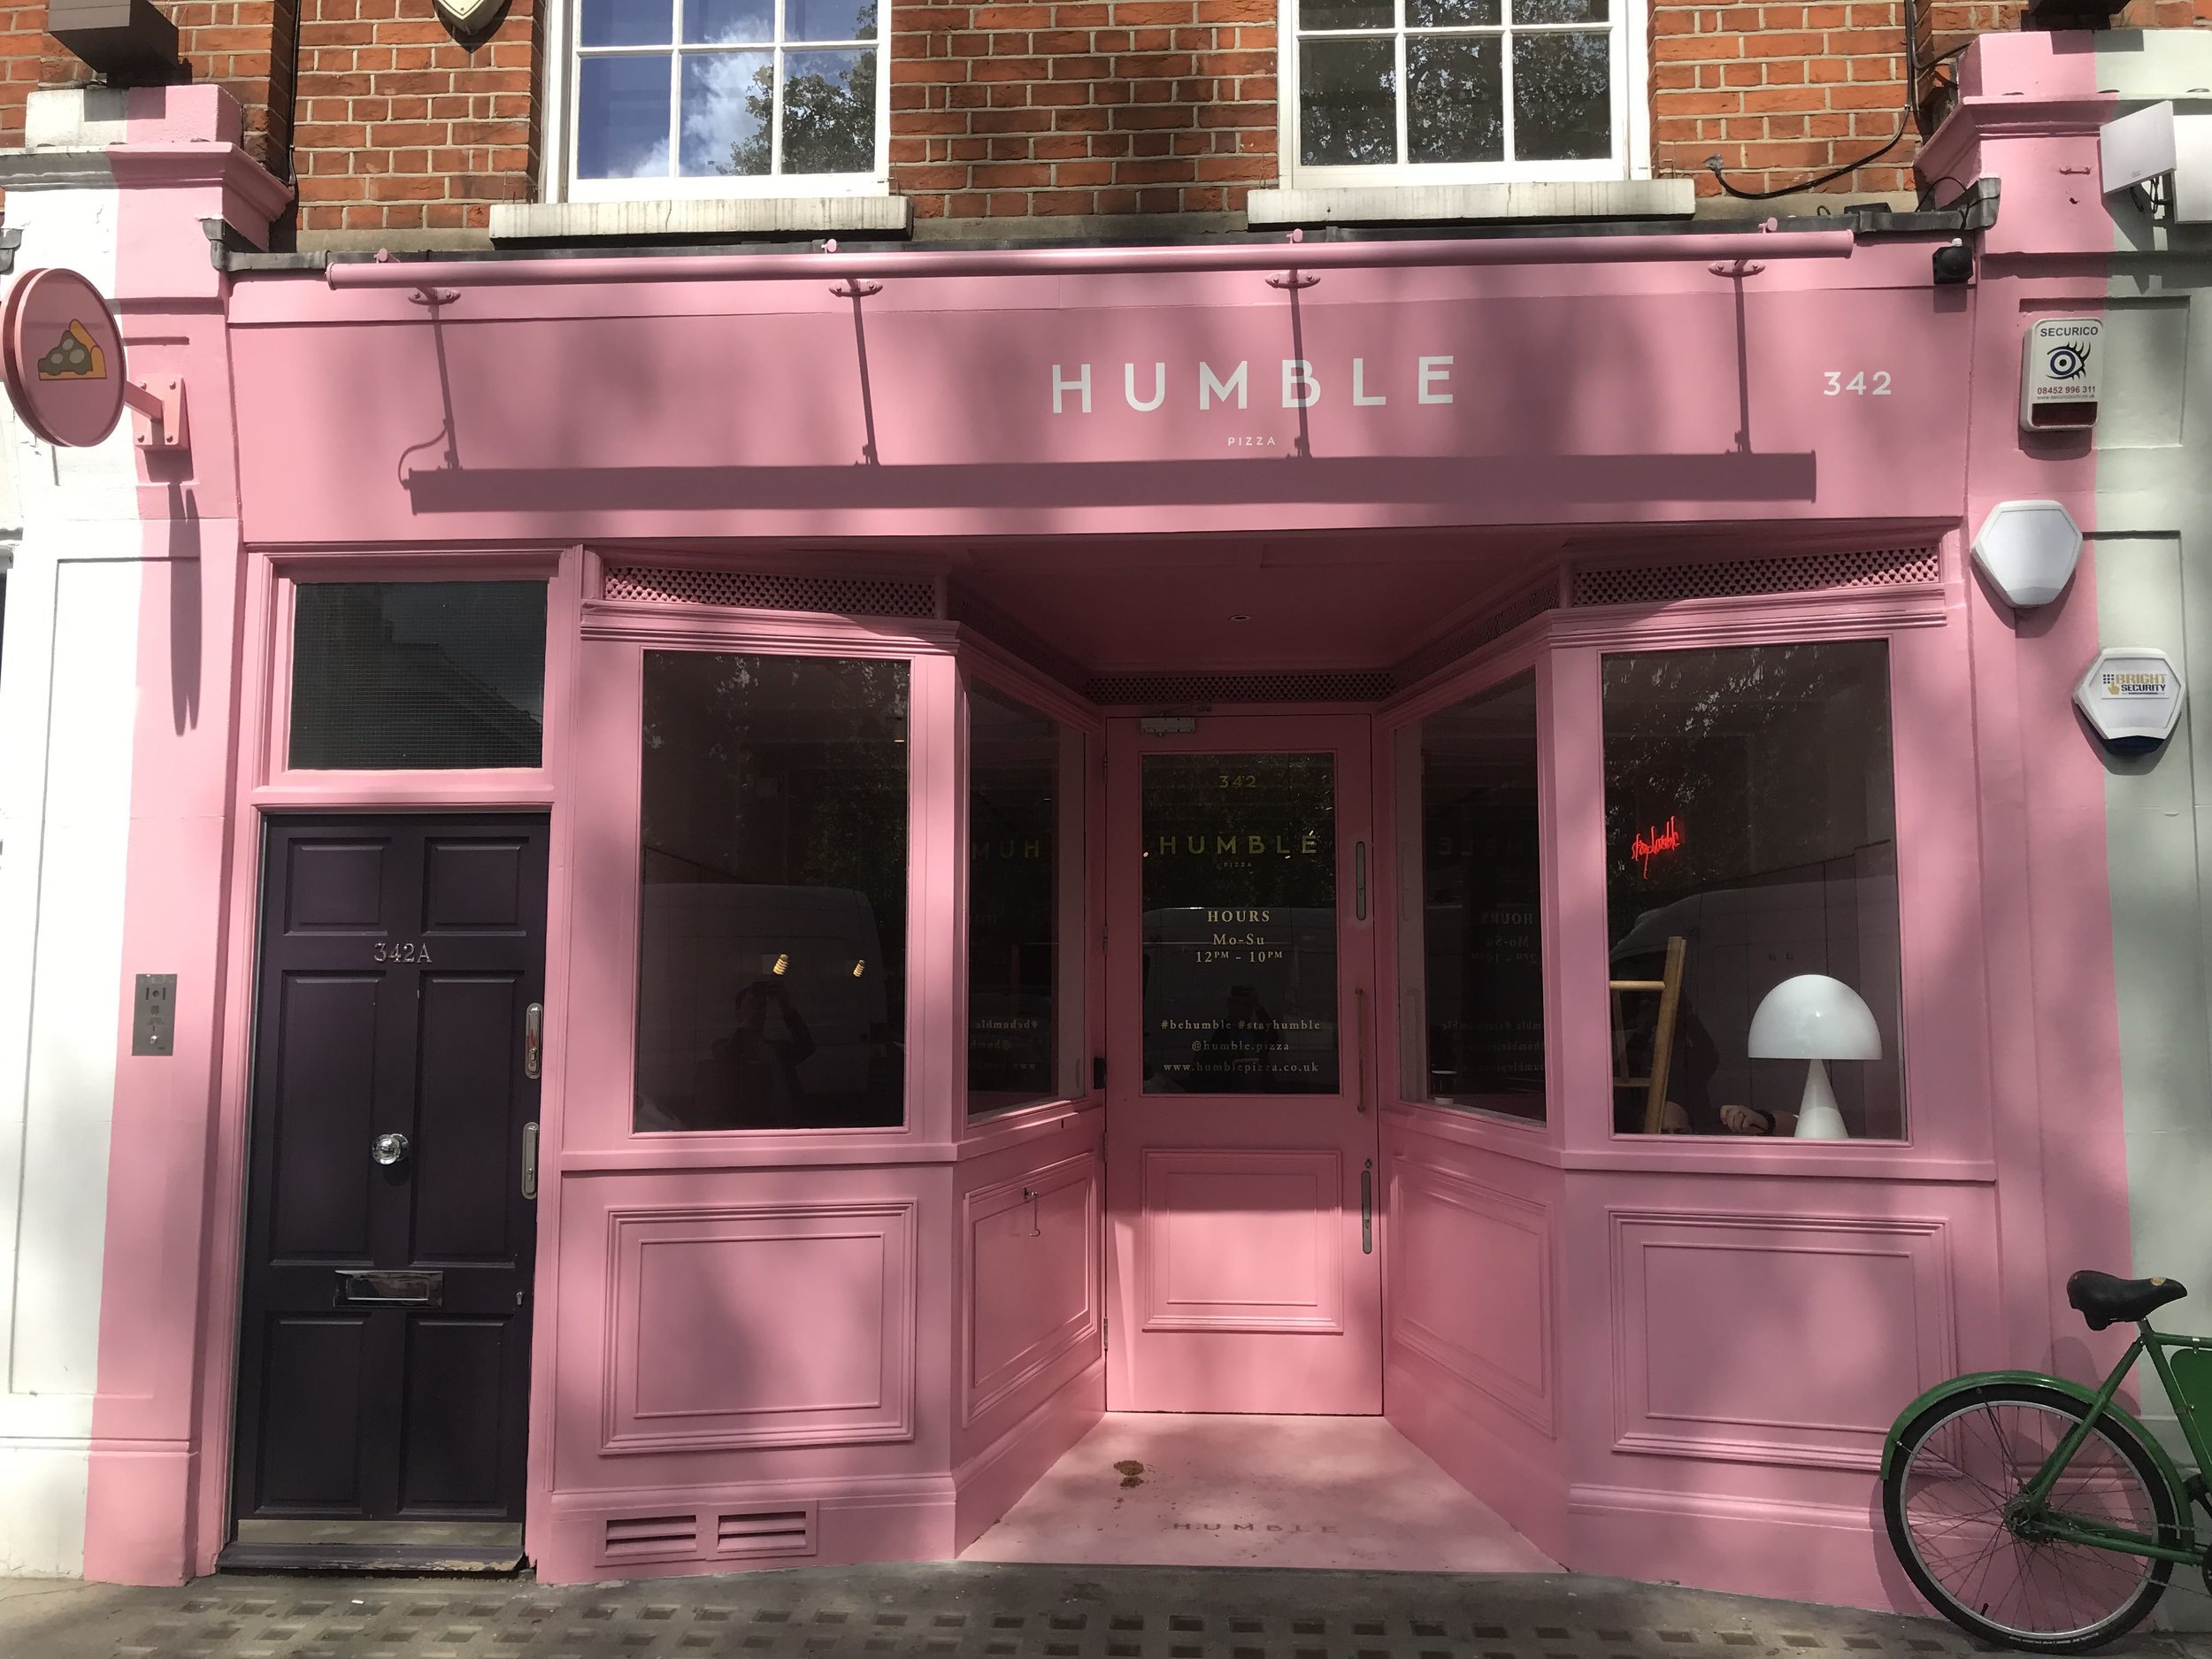 Humble_Sloane Stanley_Frontage[1].jpg